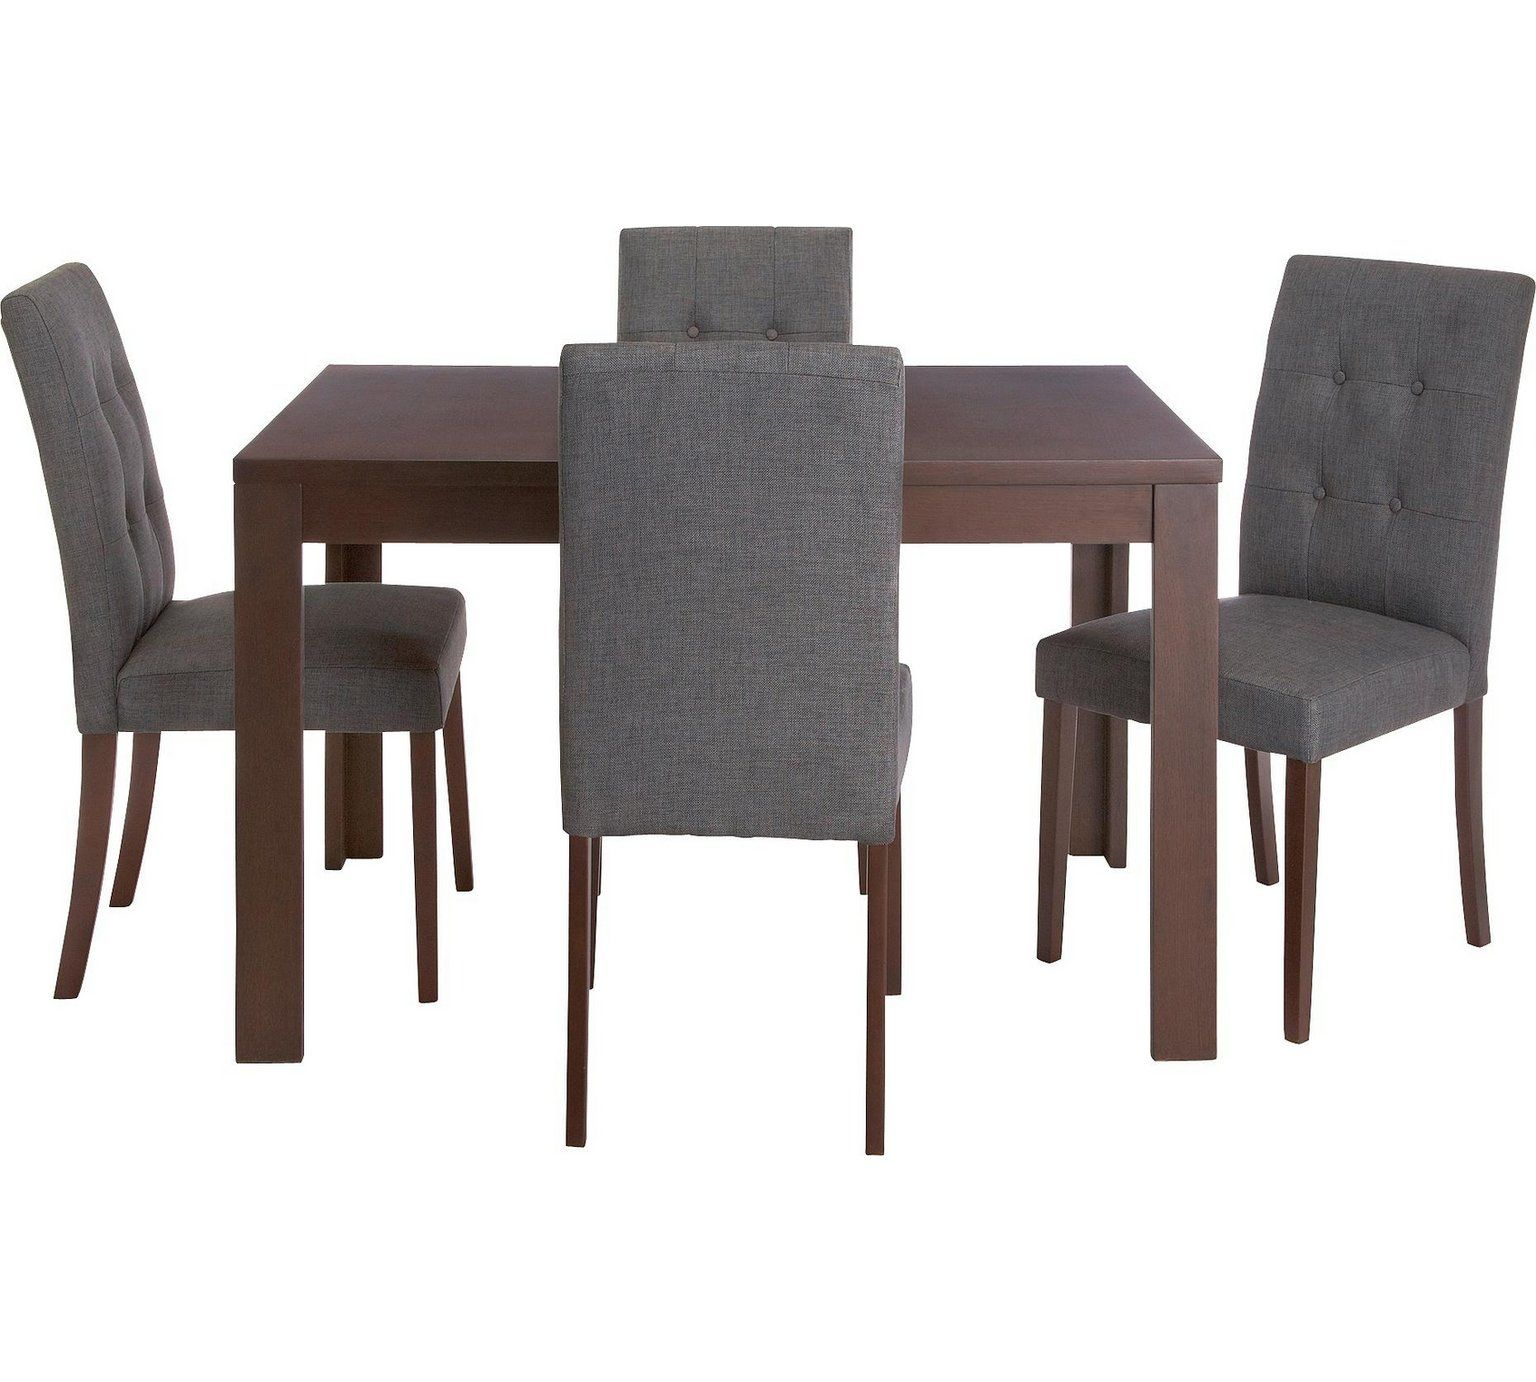 Buy Collection Adaline Ext Dining Table & 4 Chairswalnut Stain At Amusing Dining Room Sets Online 2018